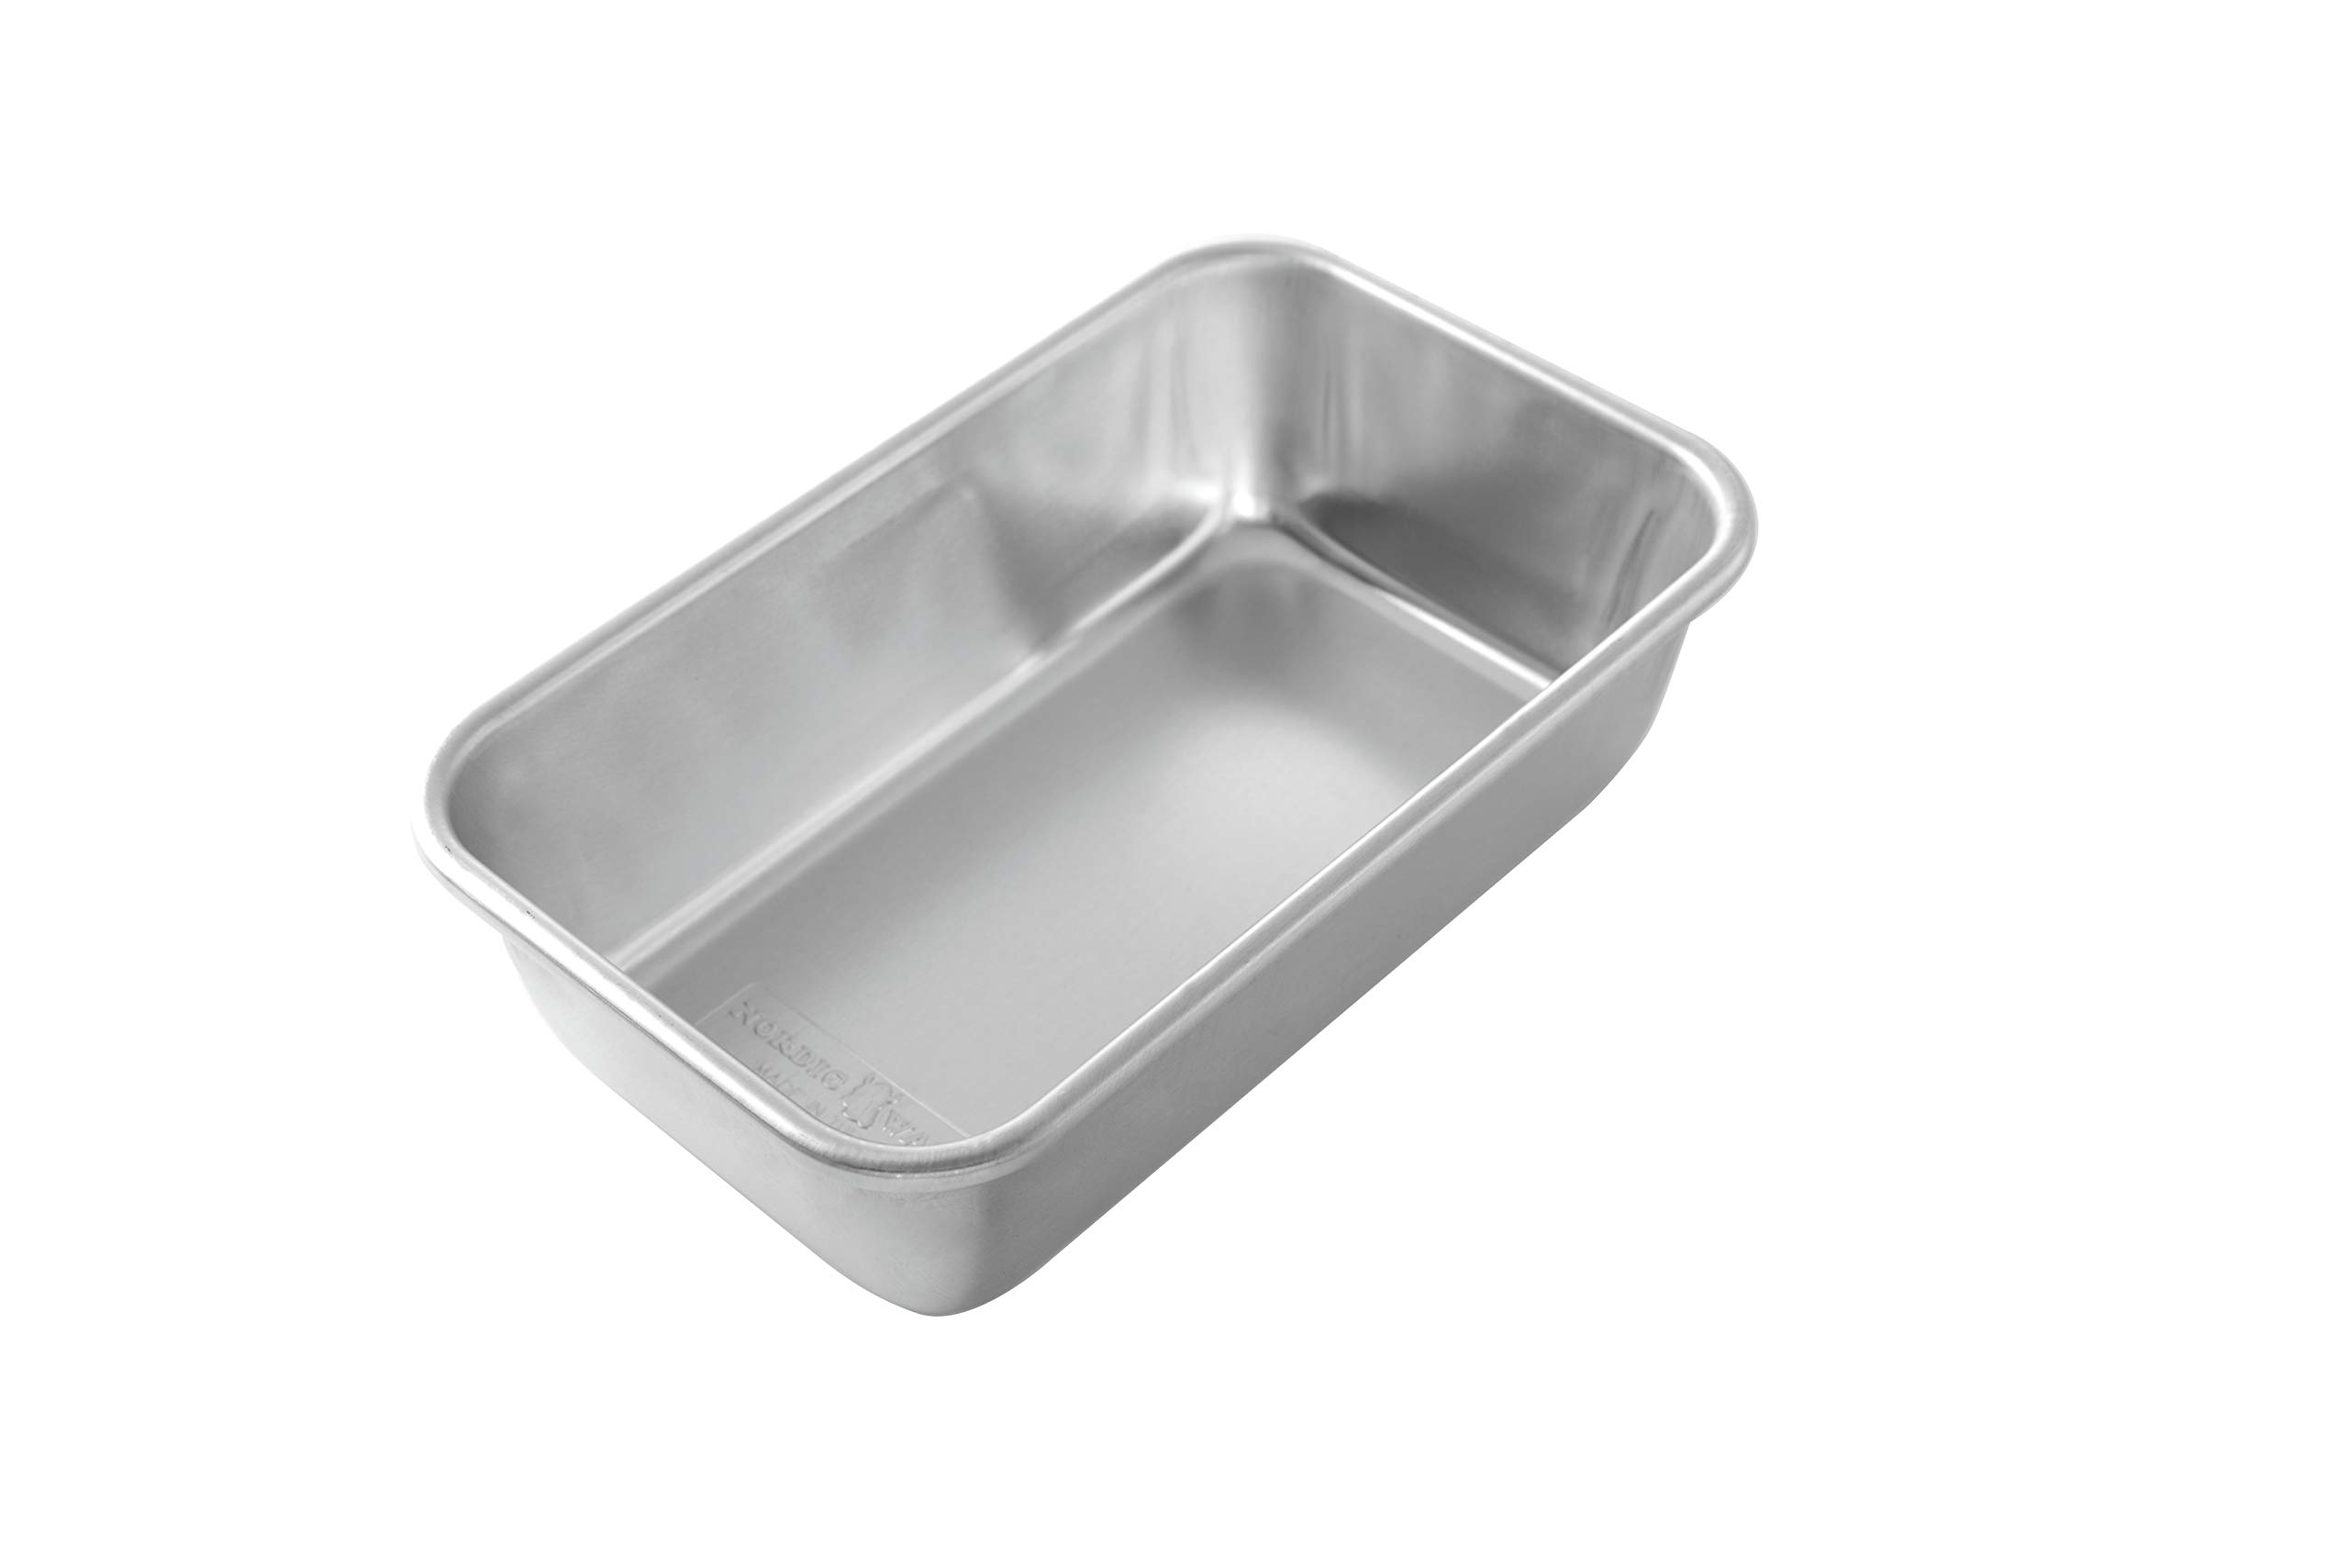 Nordic Ware Natural Aluminum Commercial Loaf Pan, 1.5 Pound by Nordic Ware